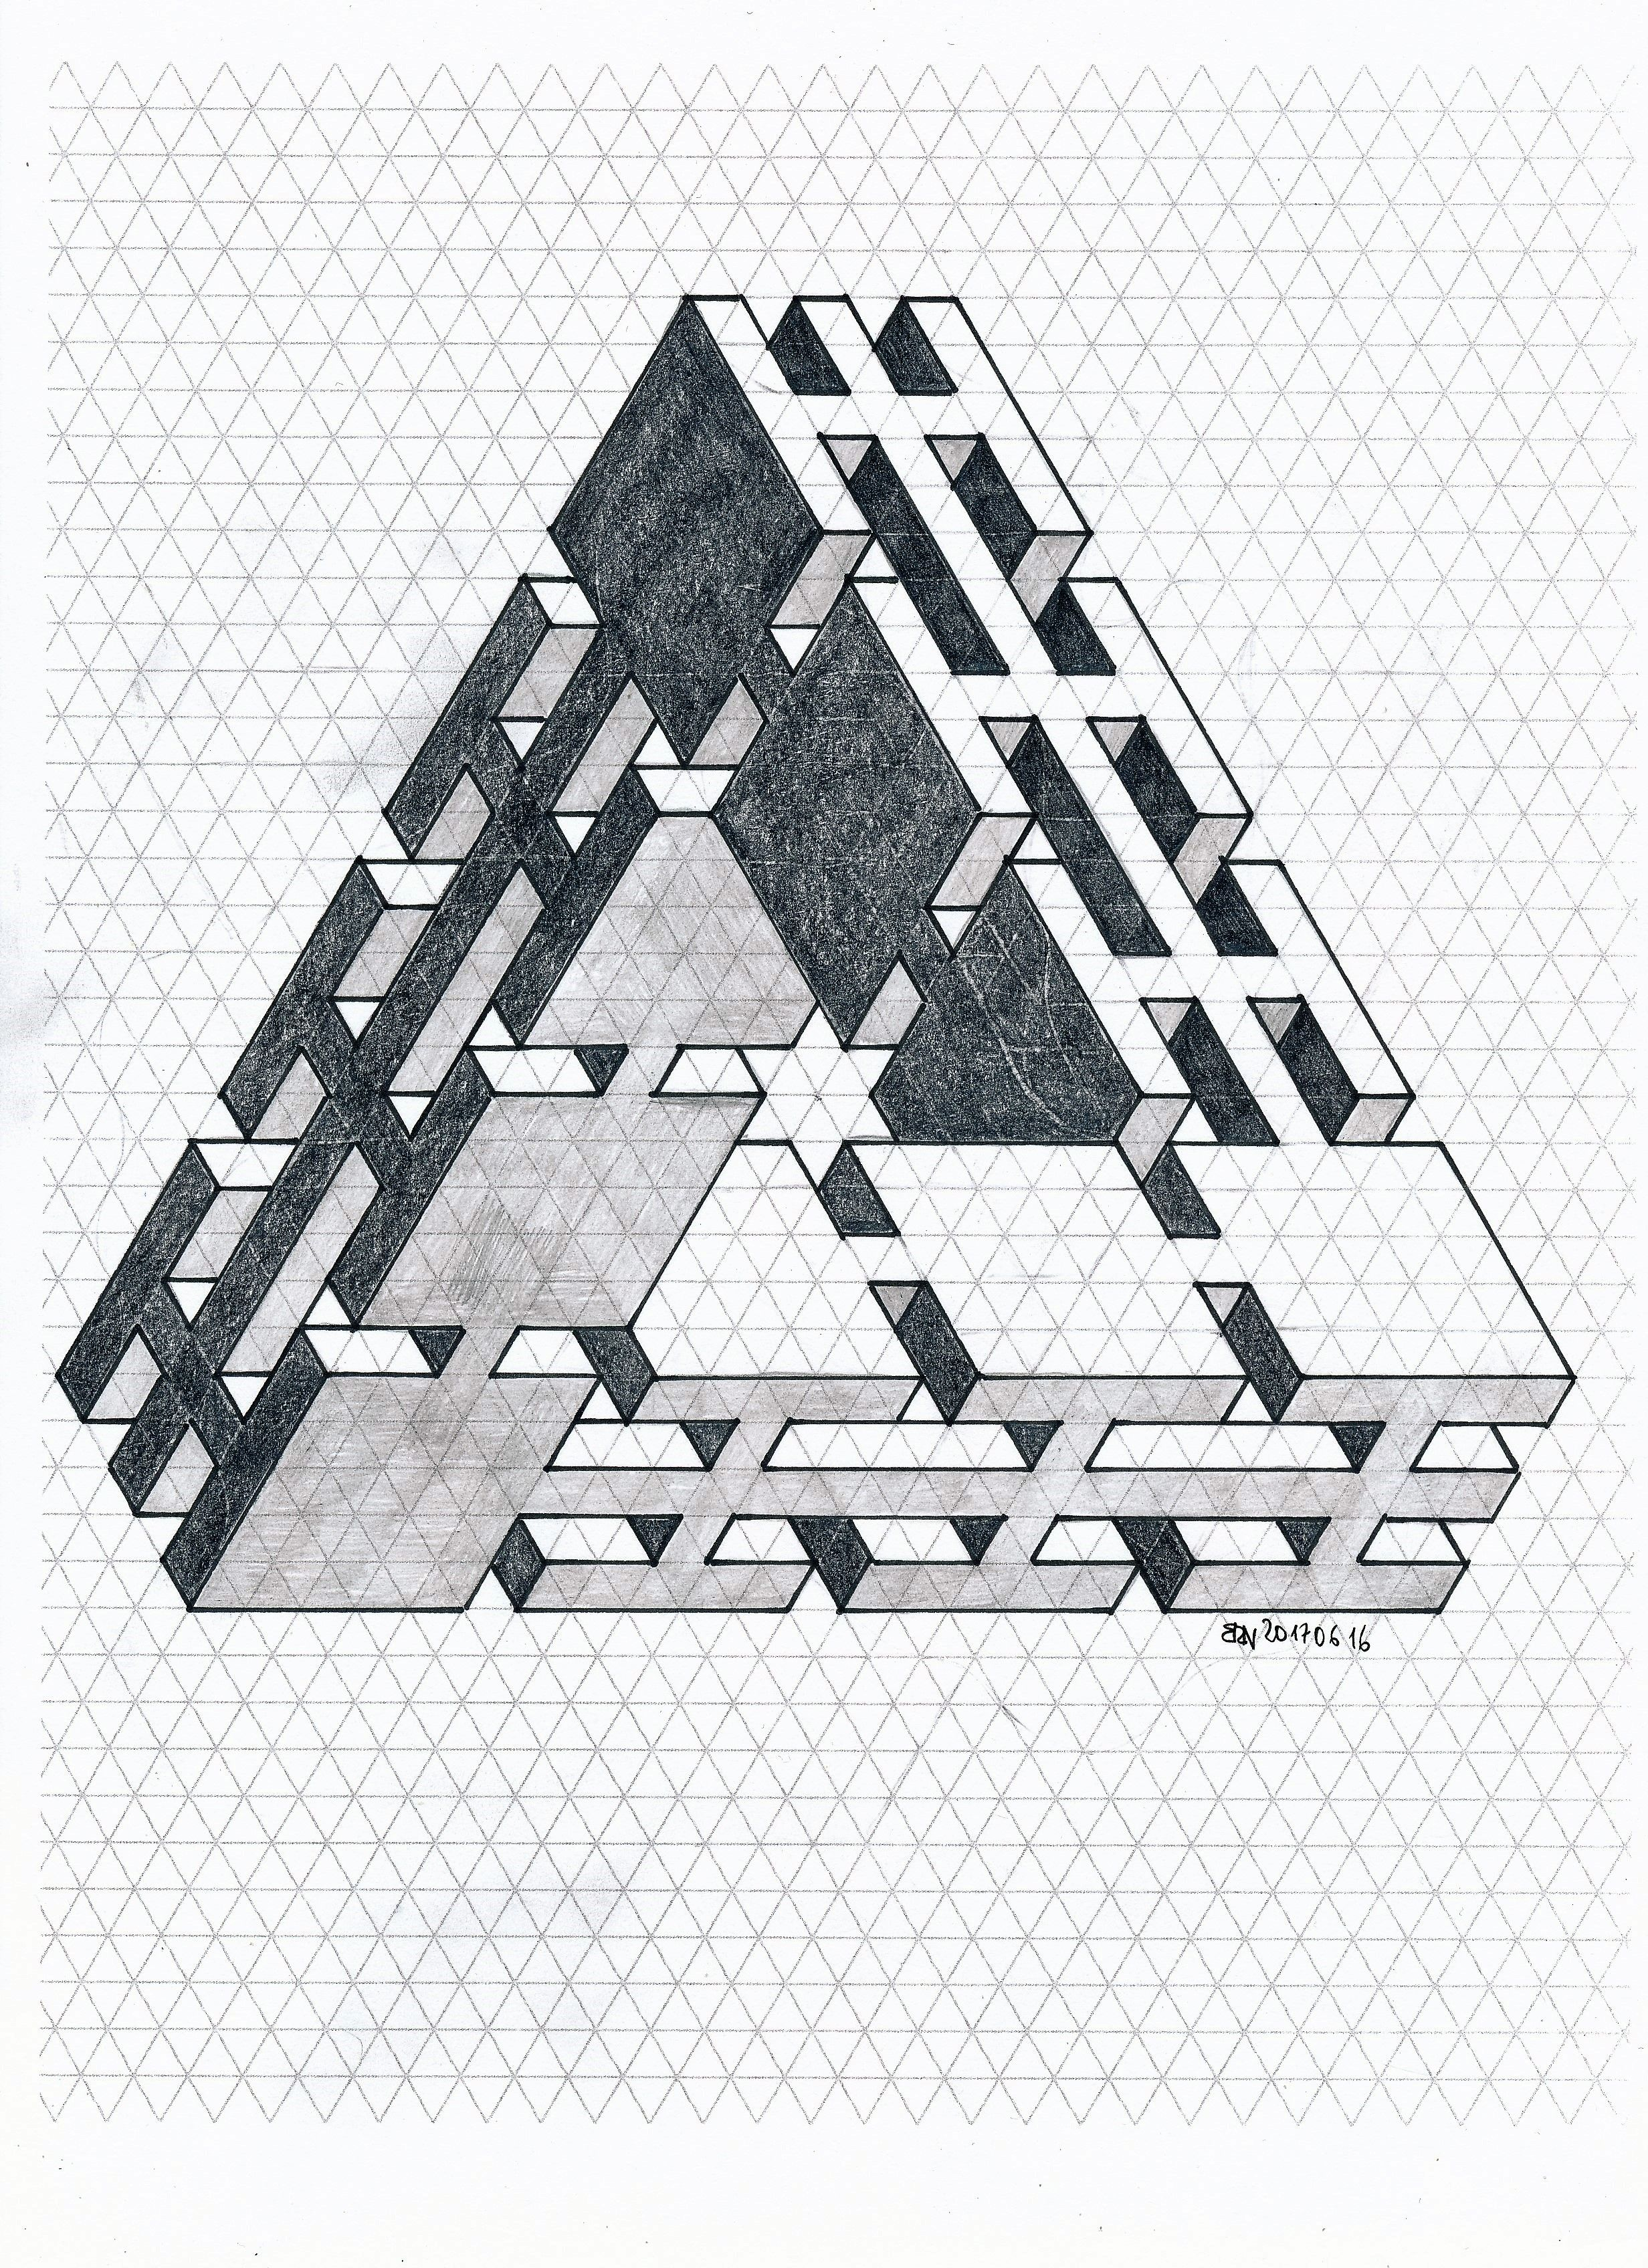 #impossible #isometric #penrose #triangle #geometry #